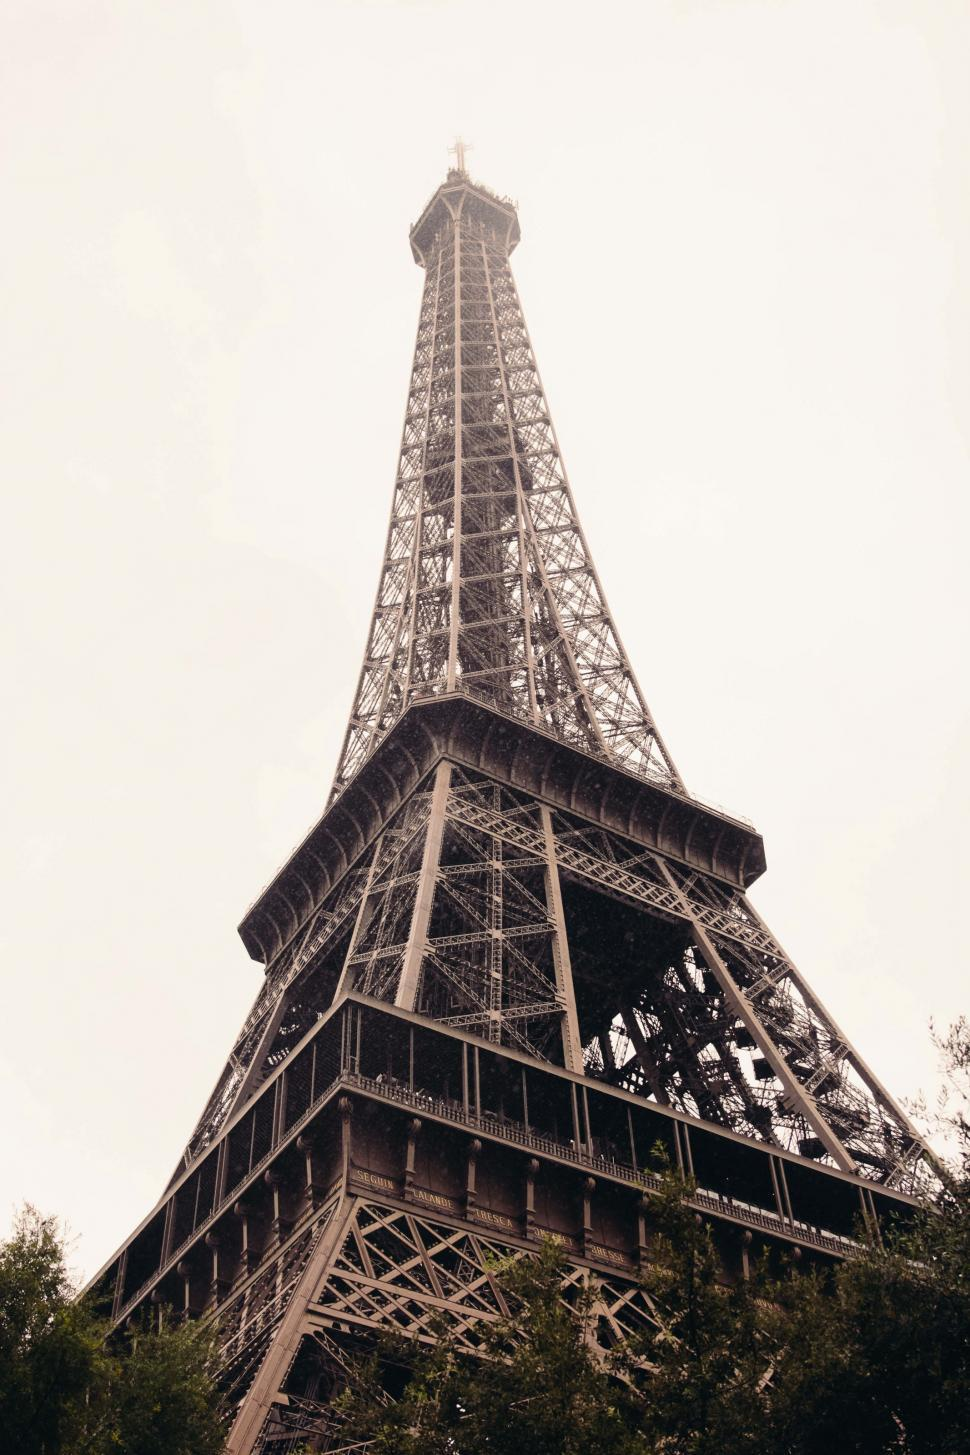 Download Free Stock HD Photo of A side view from Eiffel tower s base Online